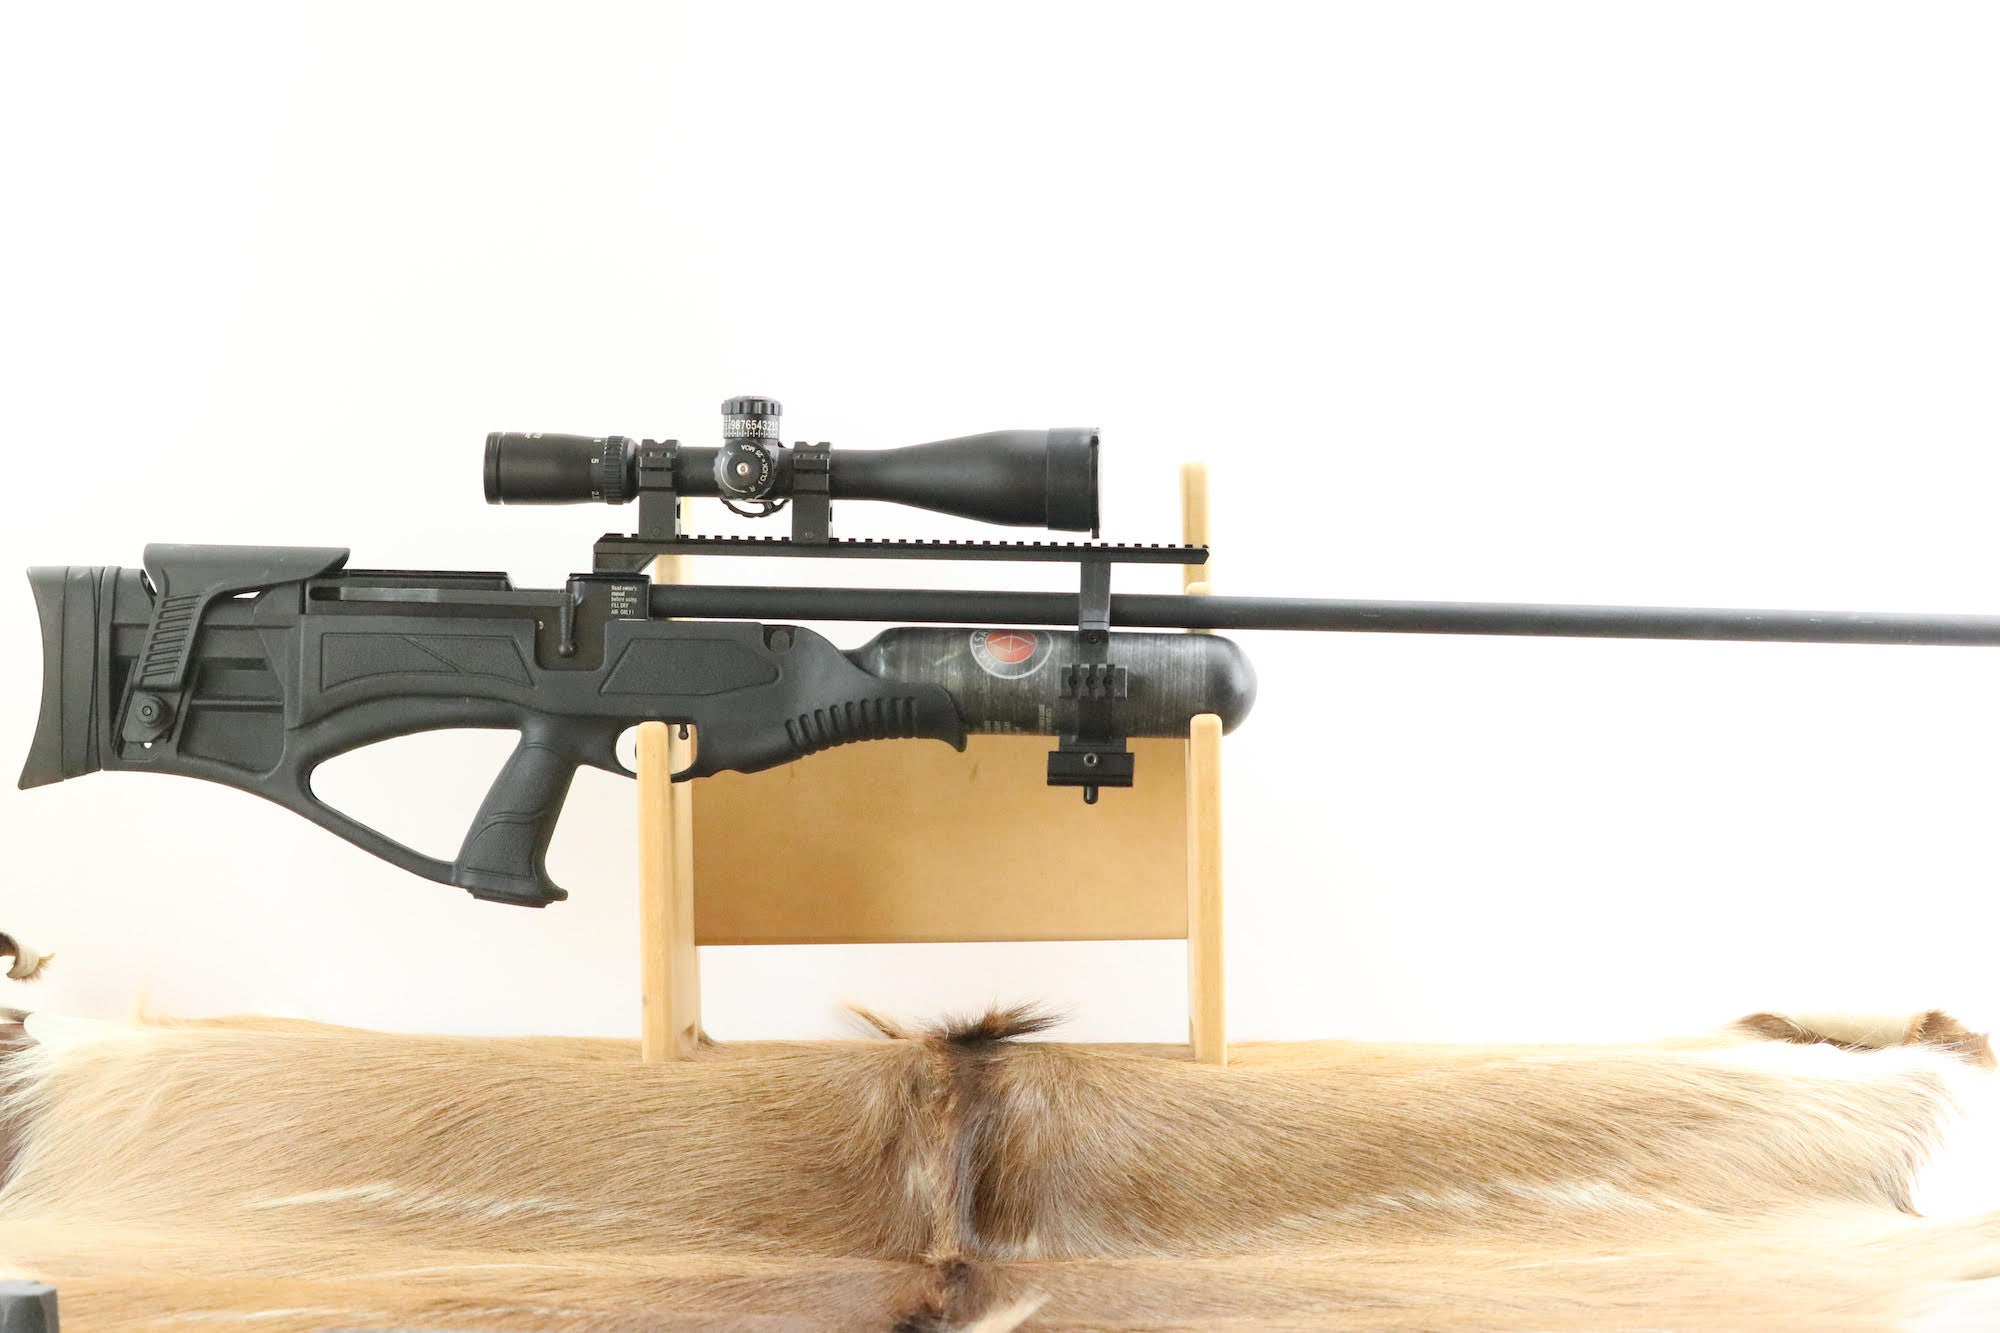 The Hatsan PileDriver is our pick for best air rifle.